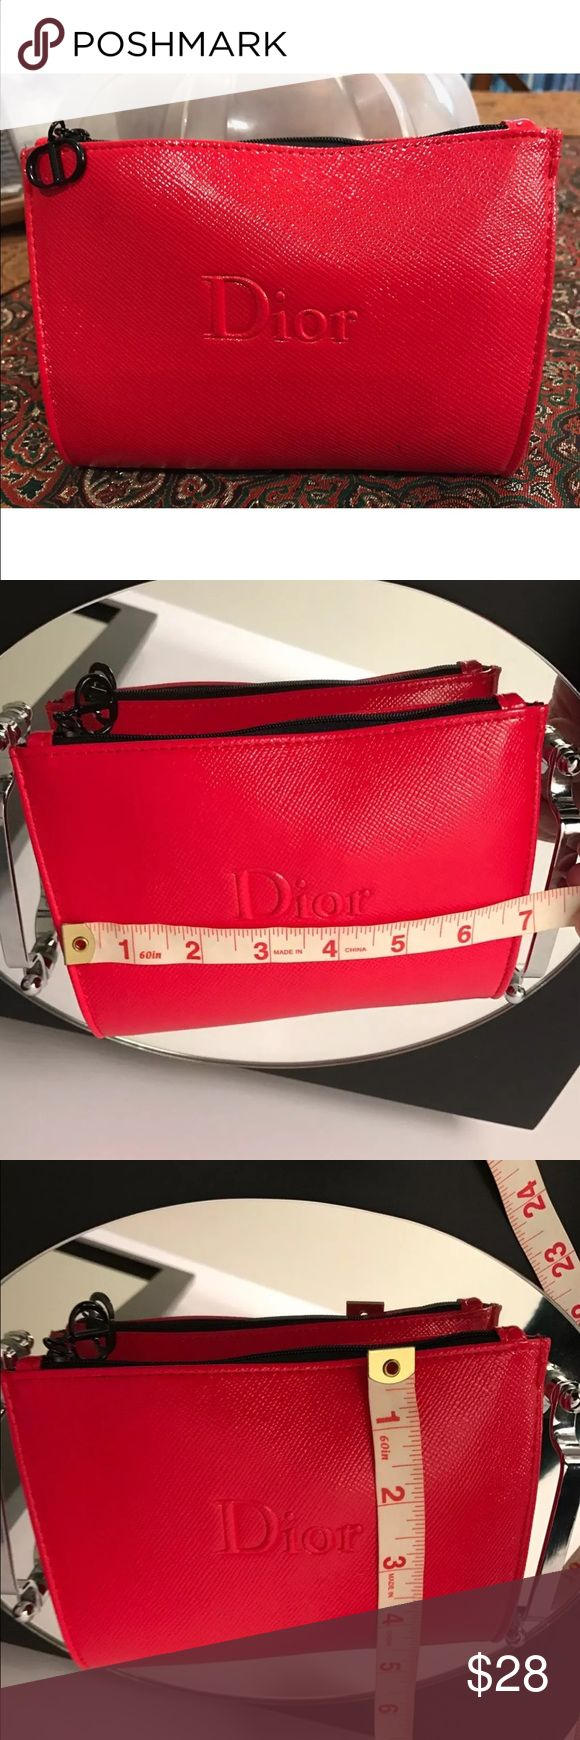 NEW RED DIOR MAKEUP BAG Brand new! Super cute DIOR makeup bag. Came with purchase of Dior Makeup from Nordstrom Dior Makeup